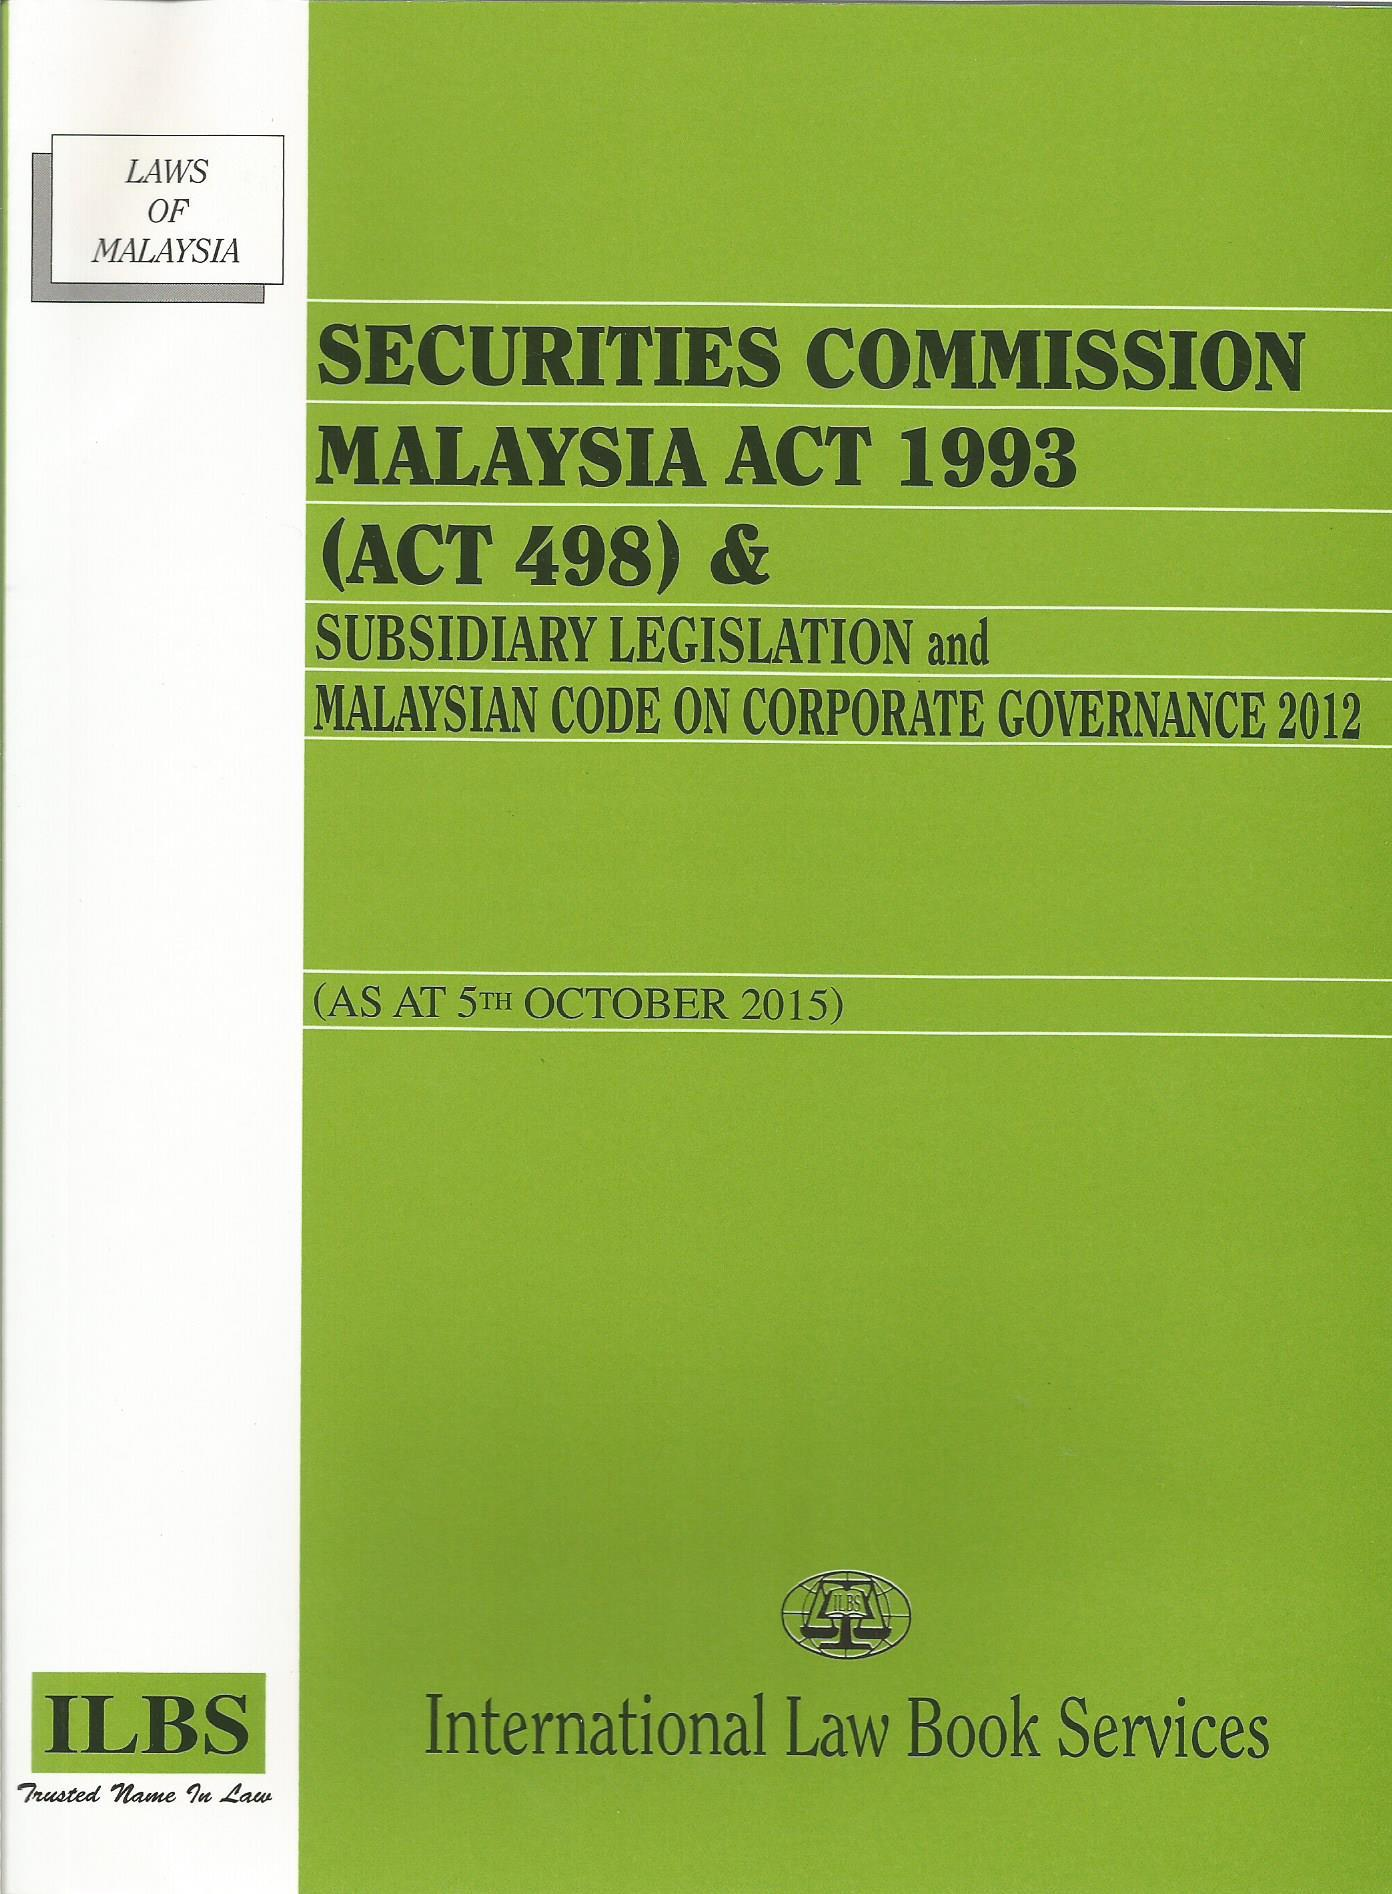 SECURITIES COMMISSION MALAYSIA ACT 1993 (ACT 498)